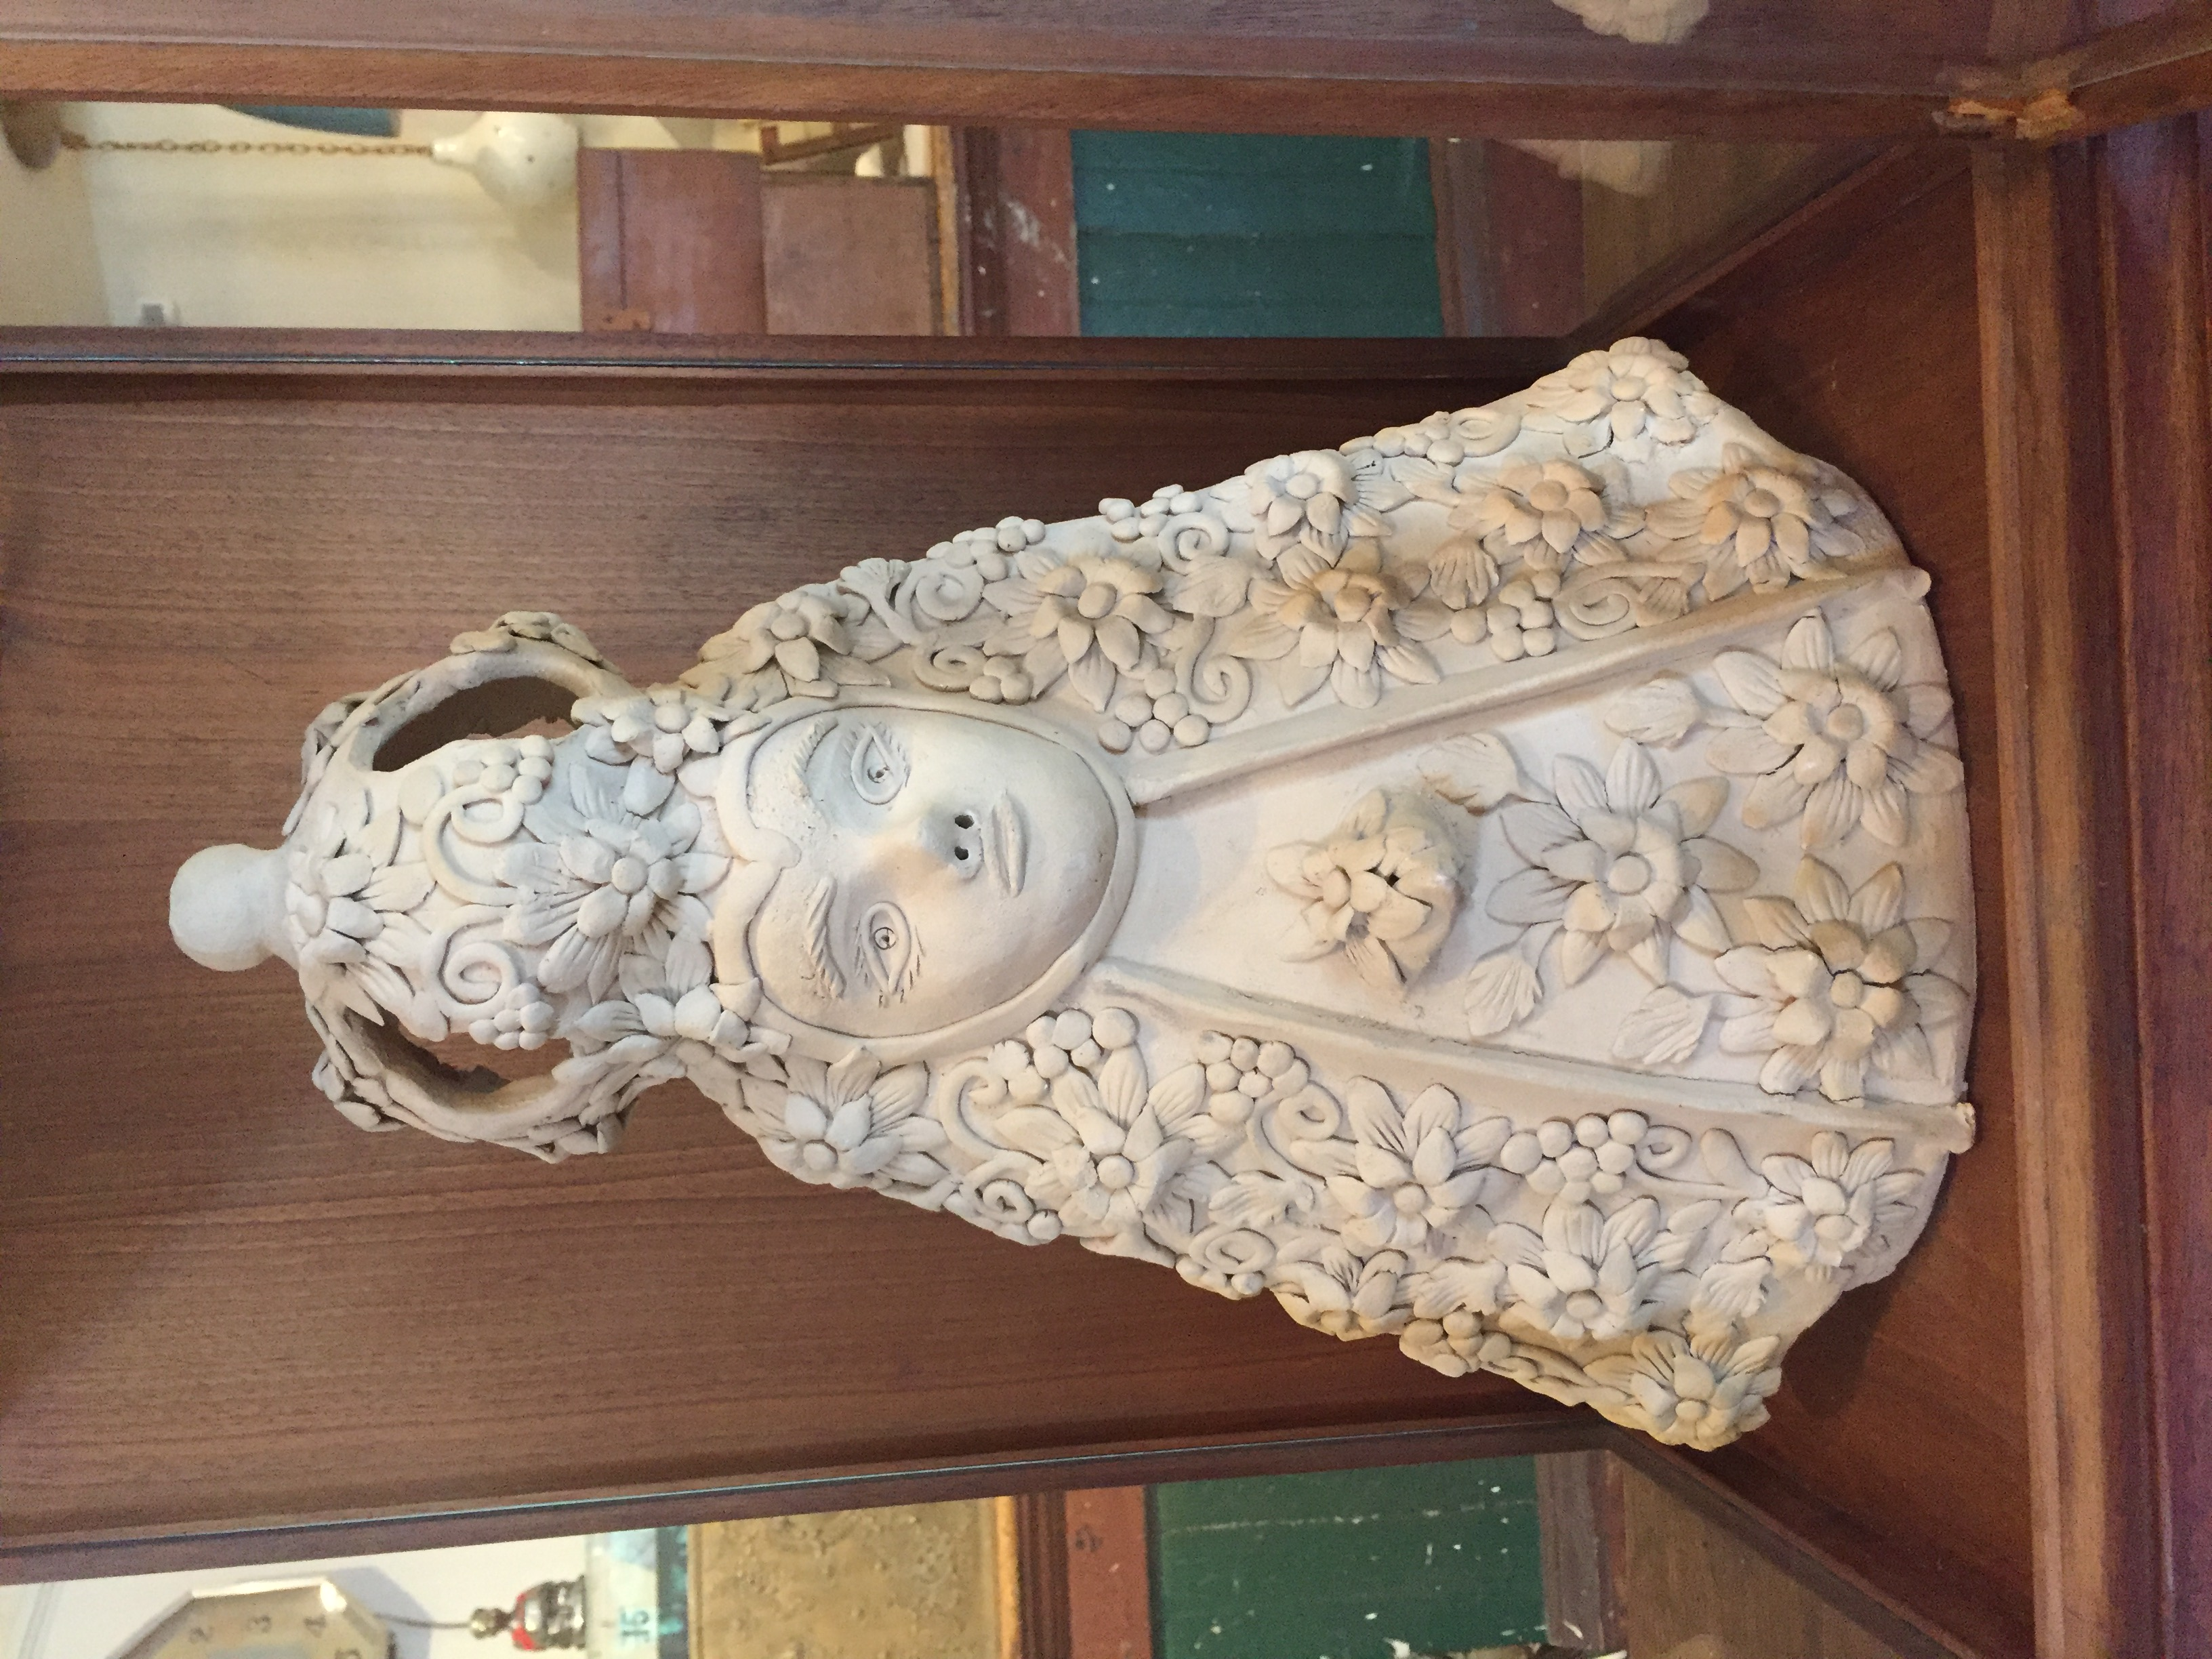 St. Theresa and Display Case